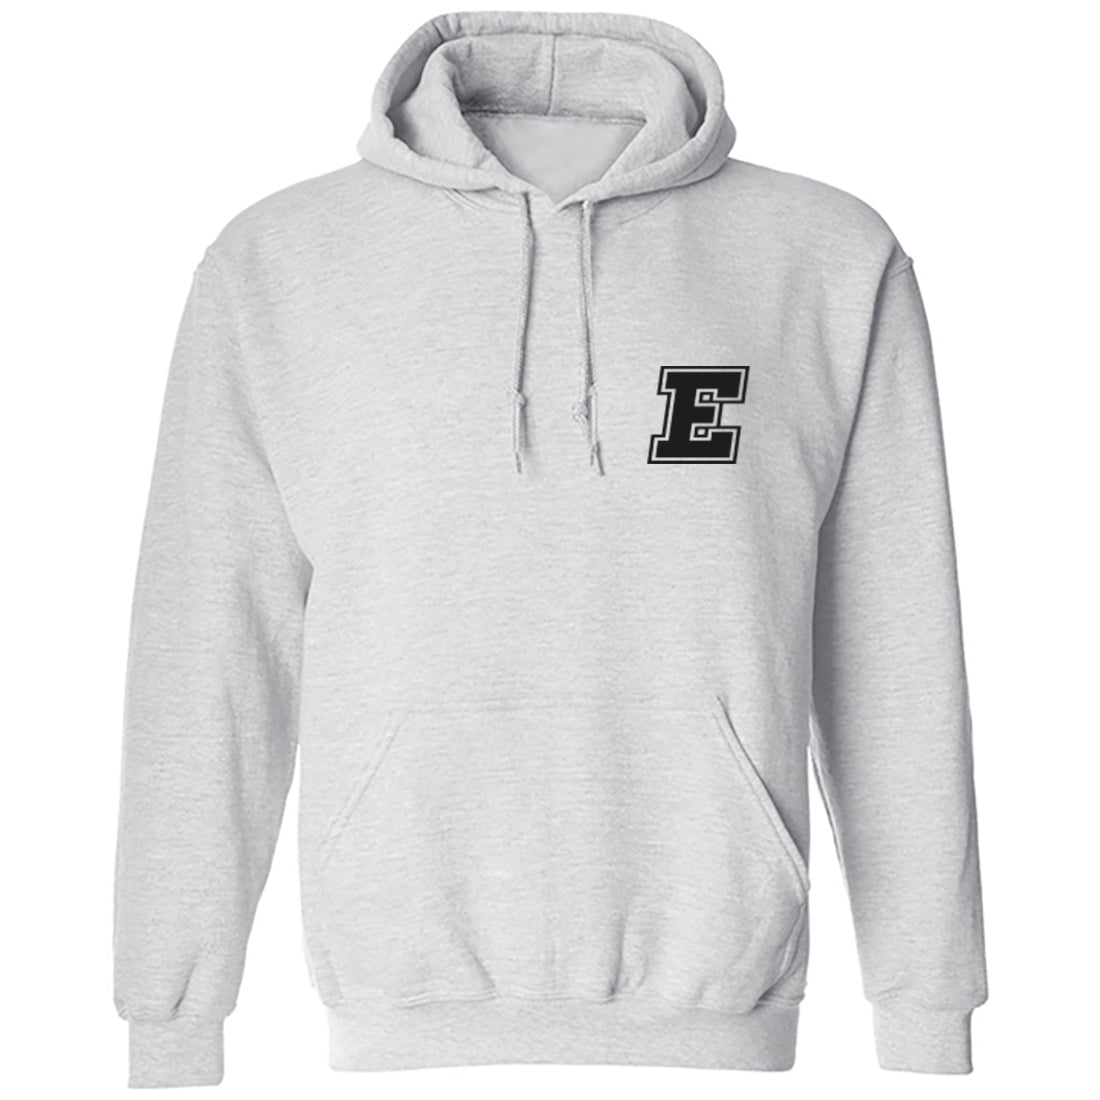 Initial 'E' Pocket Print Unisex Hoodie K0921 - Illustrated Identity Ltd.